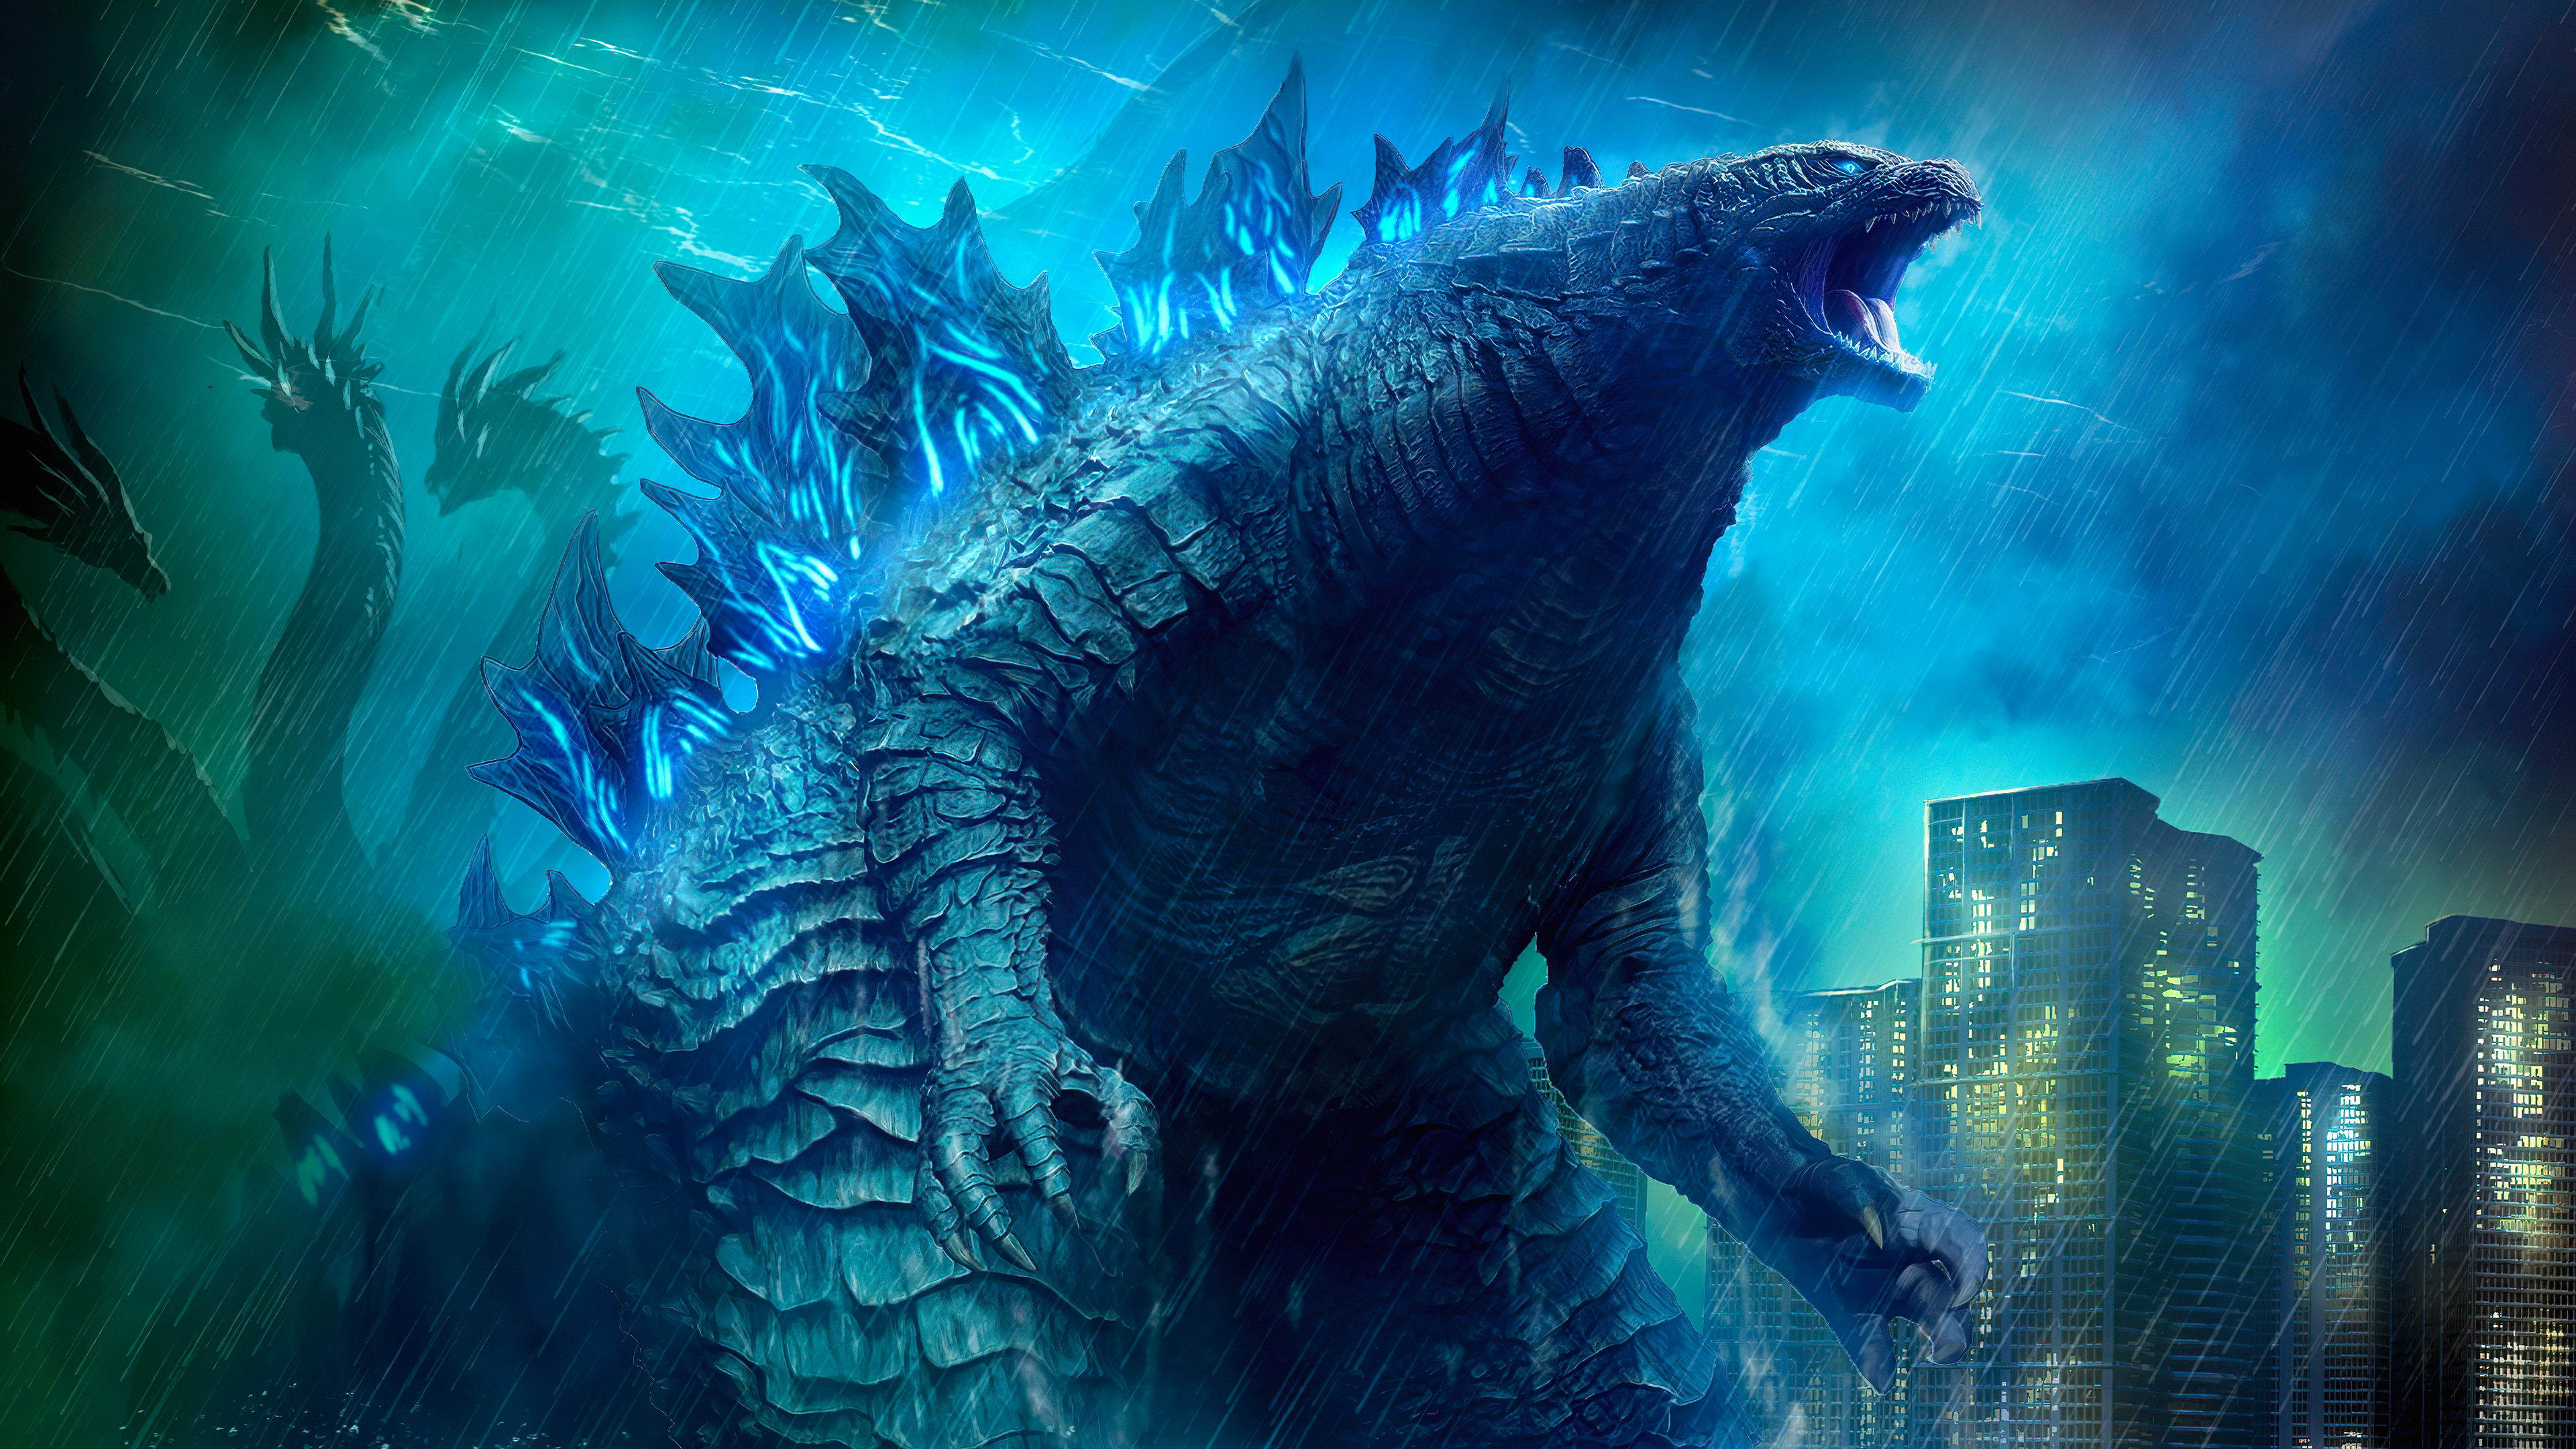 Godzilla King Of The Monsters 4k Ultra Hd Wallpaper Background